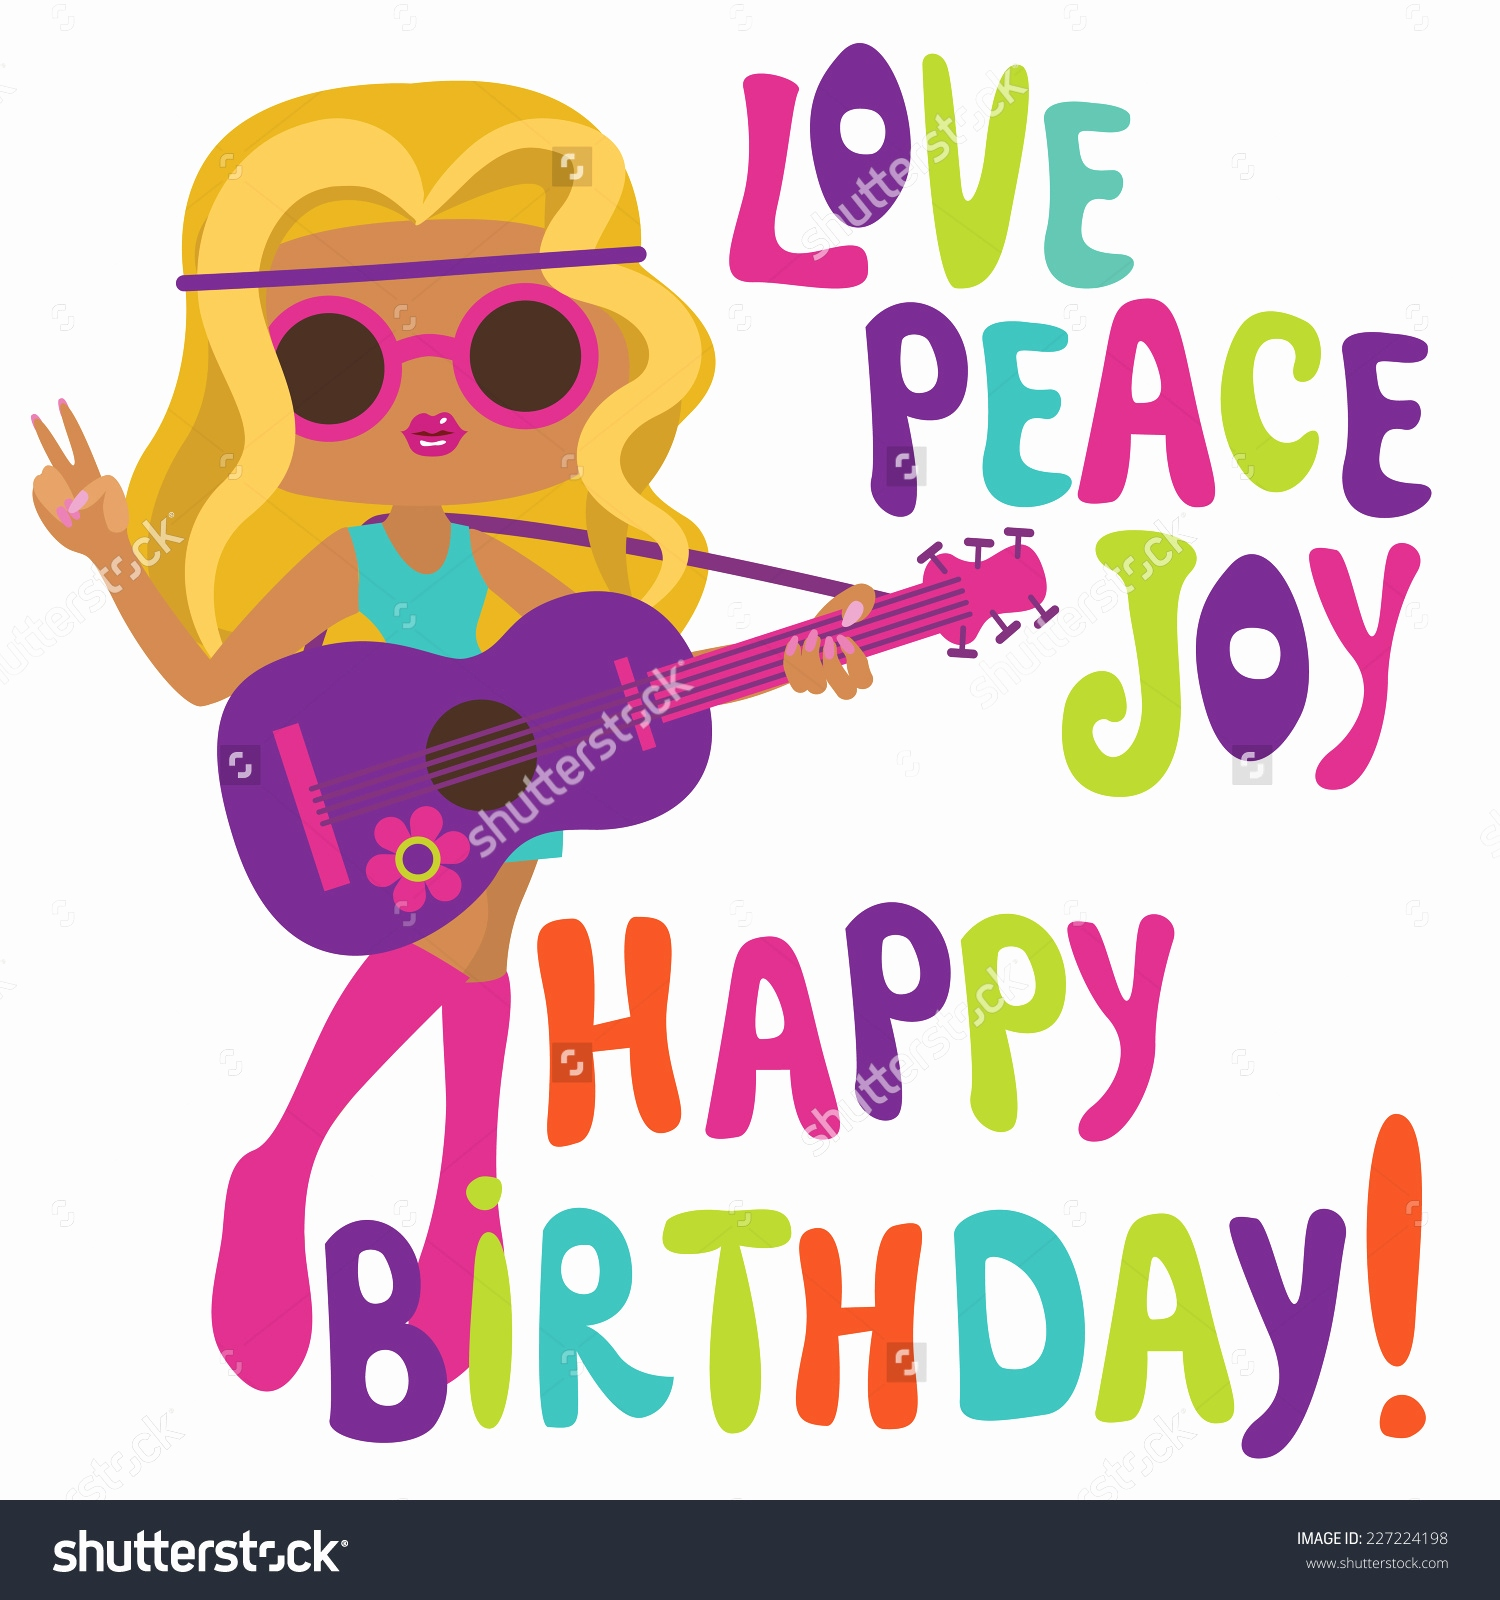 happy birthday peace ; peace-sign-birthday-cards-inspirational-10-best-images-about-happy-birthday-on-pinterest-of-peace-sign-birthday-cards